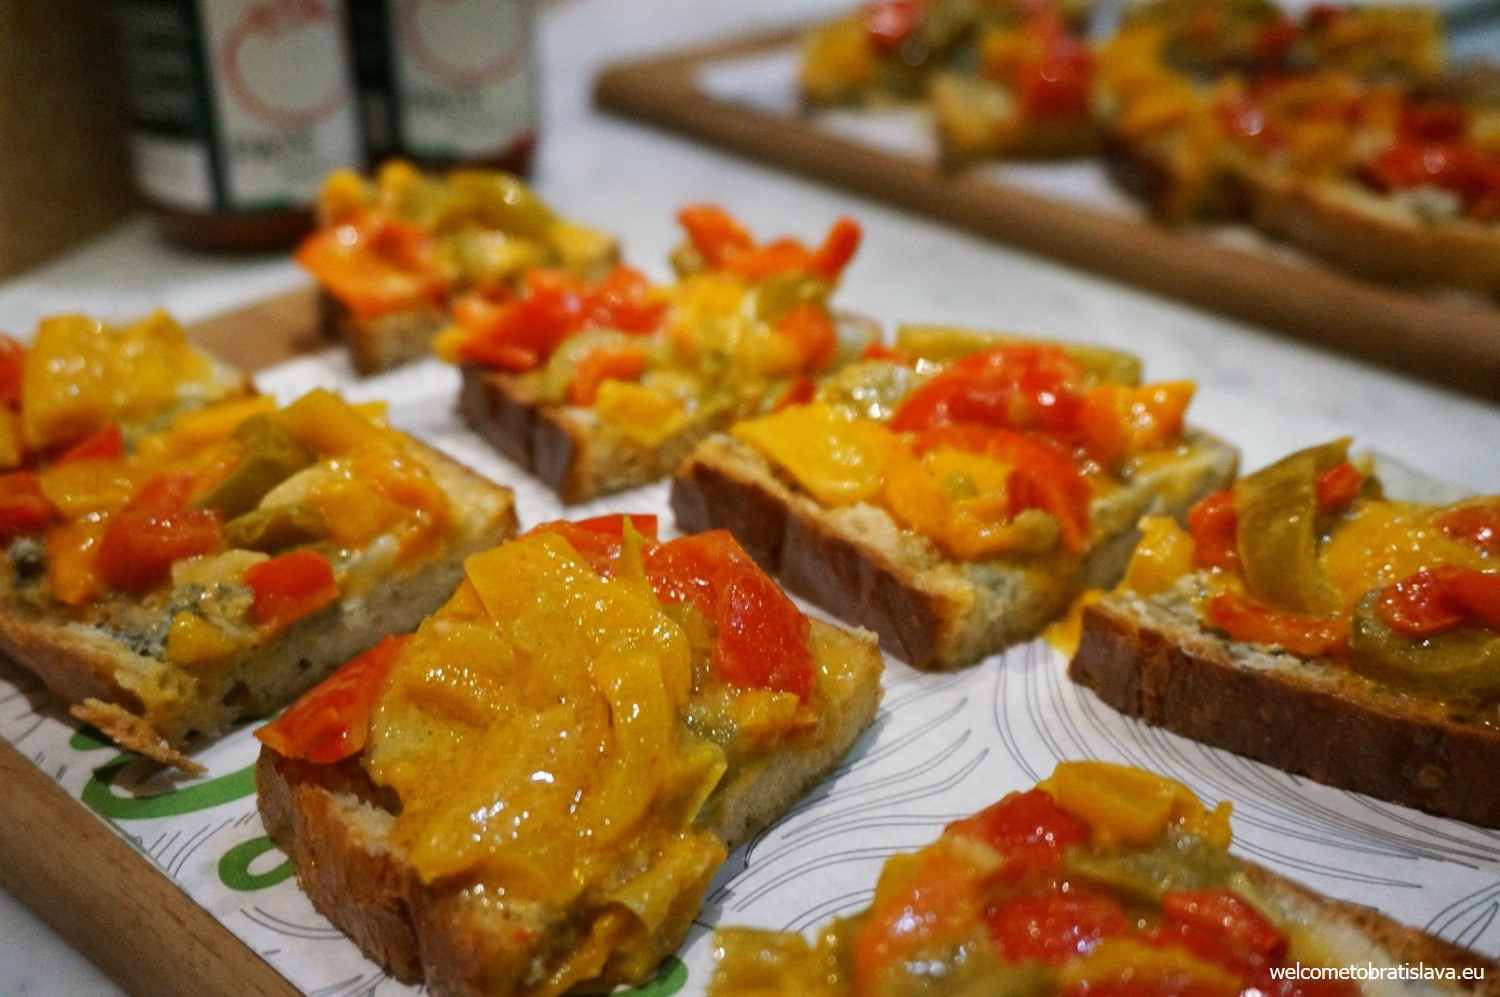 Bruschettas with Gorgonzola DOP and roasted peppers